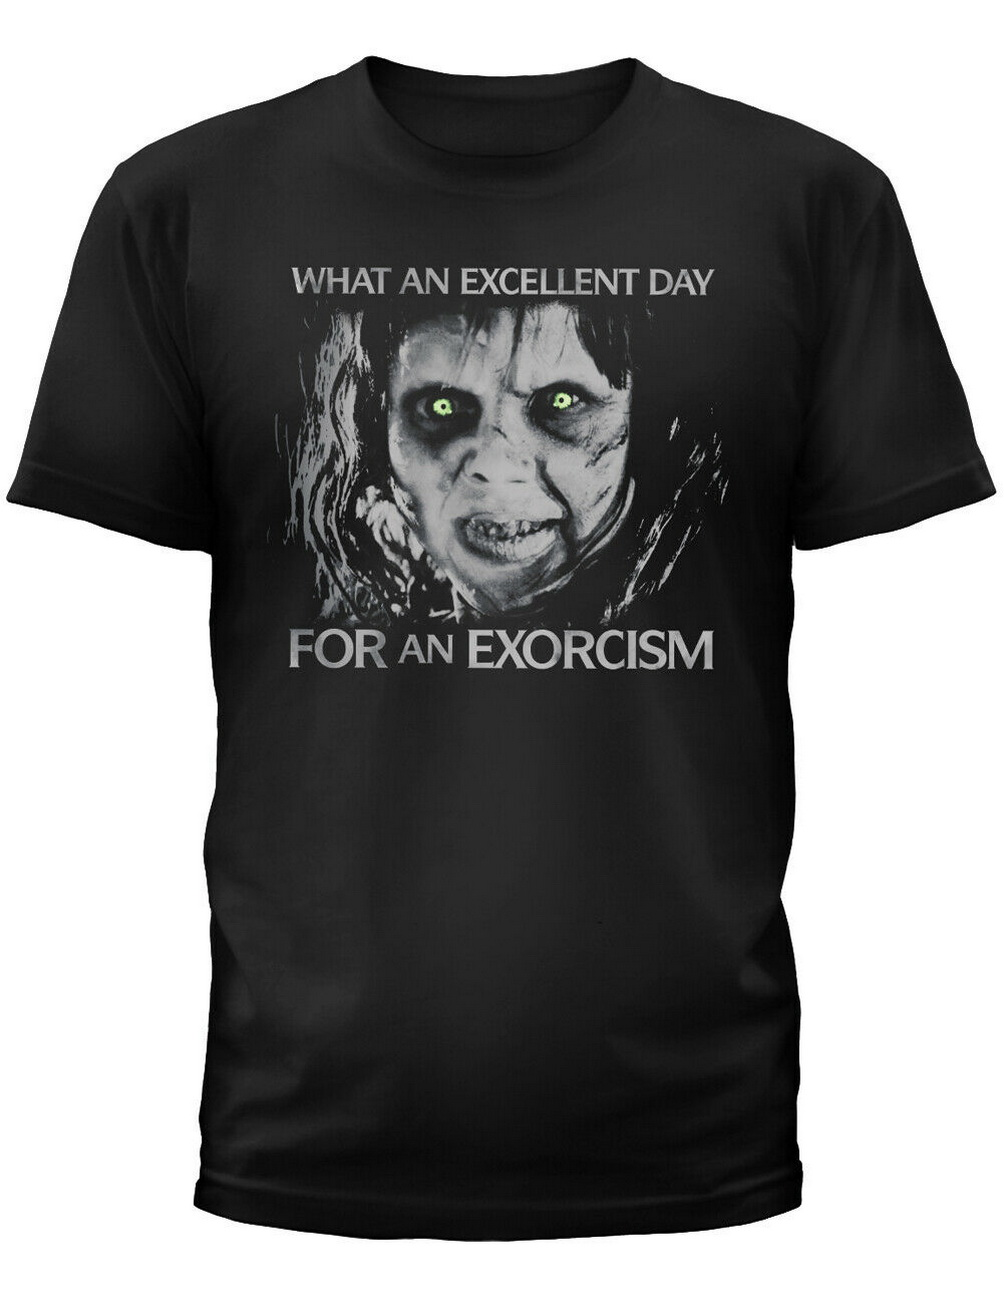 NEW NWT The Exorcist Black T-Shirt An Excellent Day For An Exorcism